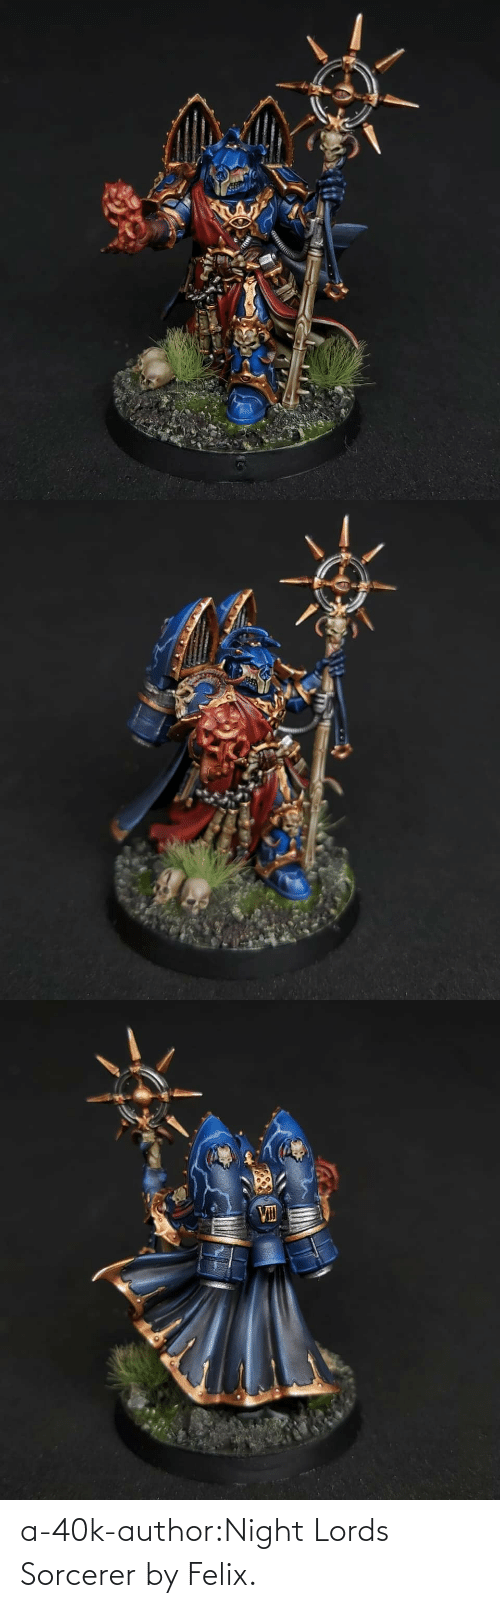 Author: a-40k-author:Night Lords Sorcerer by Felix.